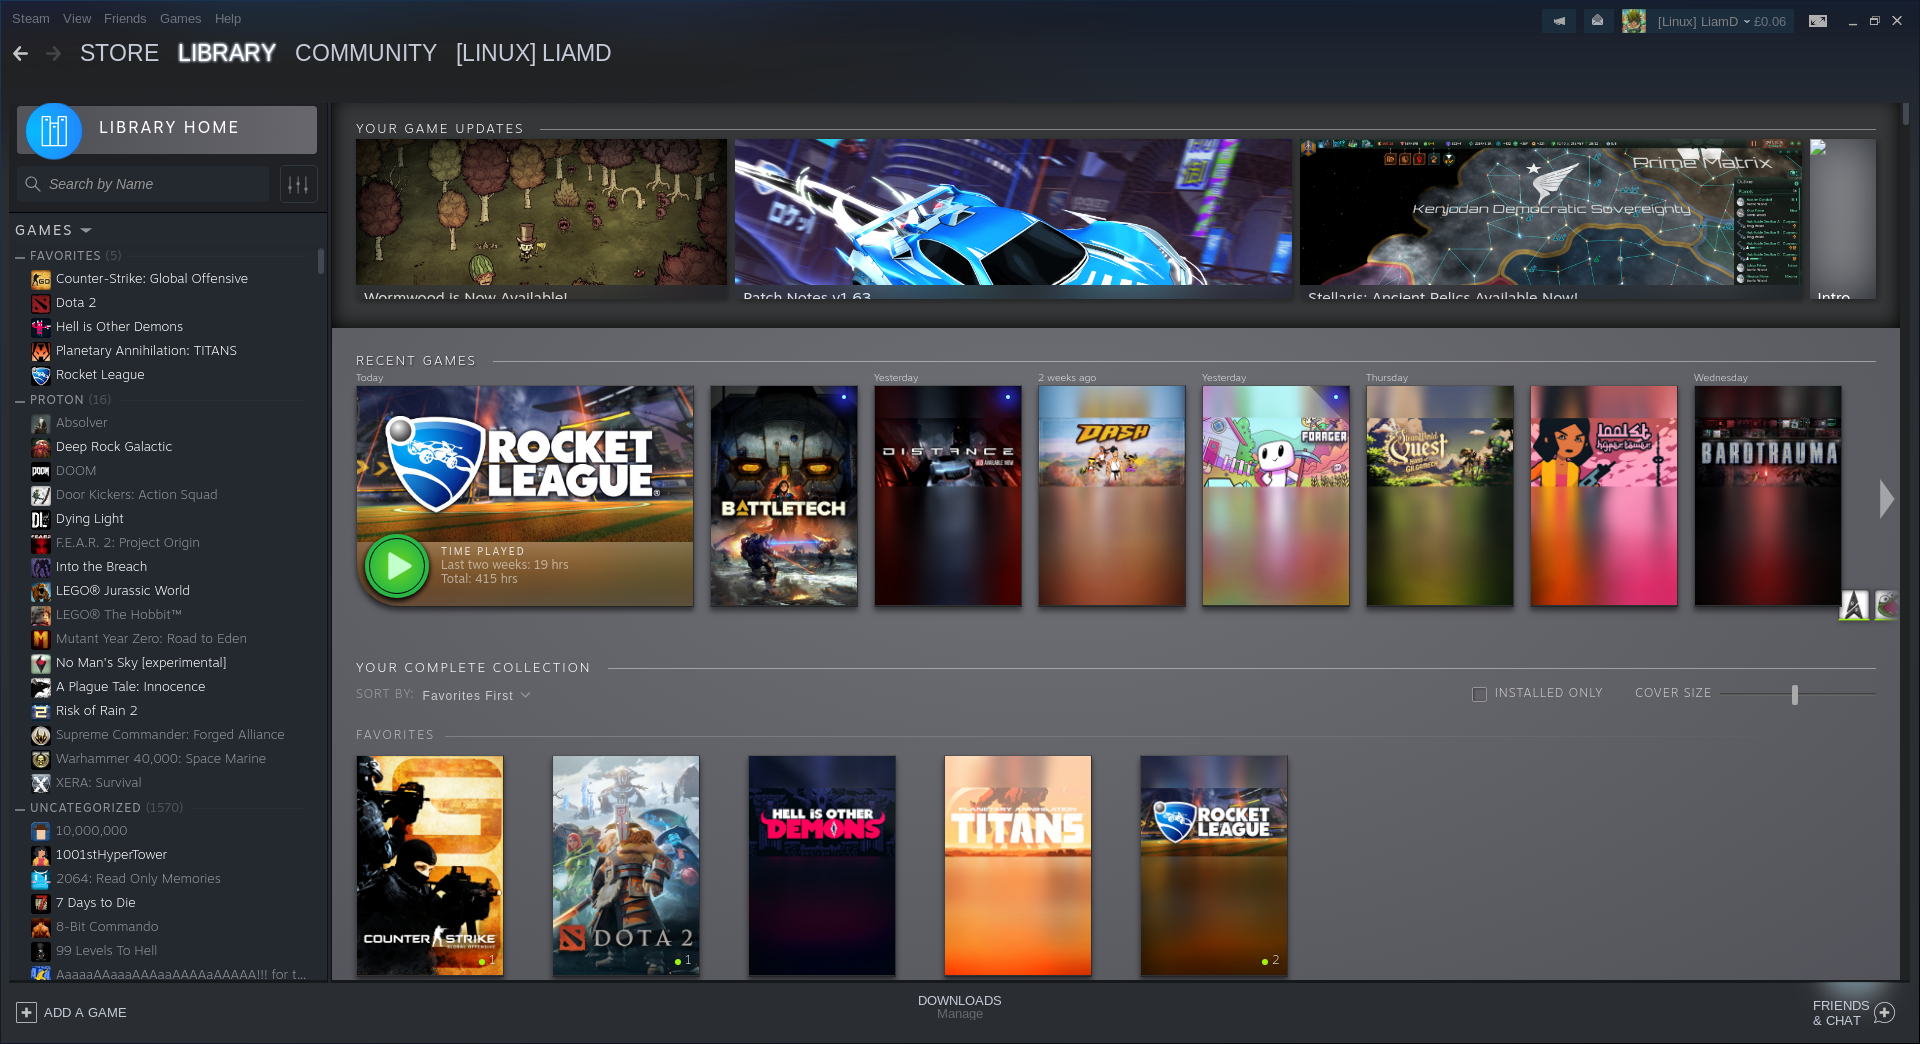 More shots of Steam's new Library design thanks to a leak (updated